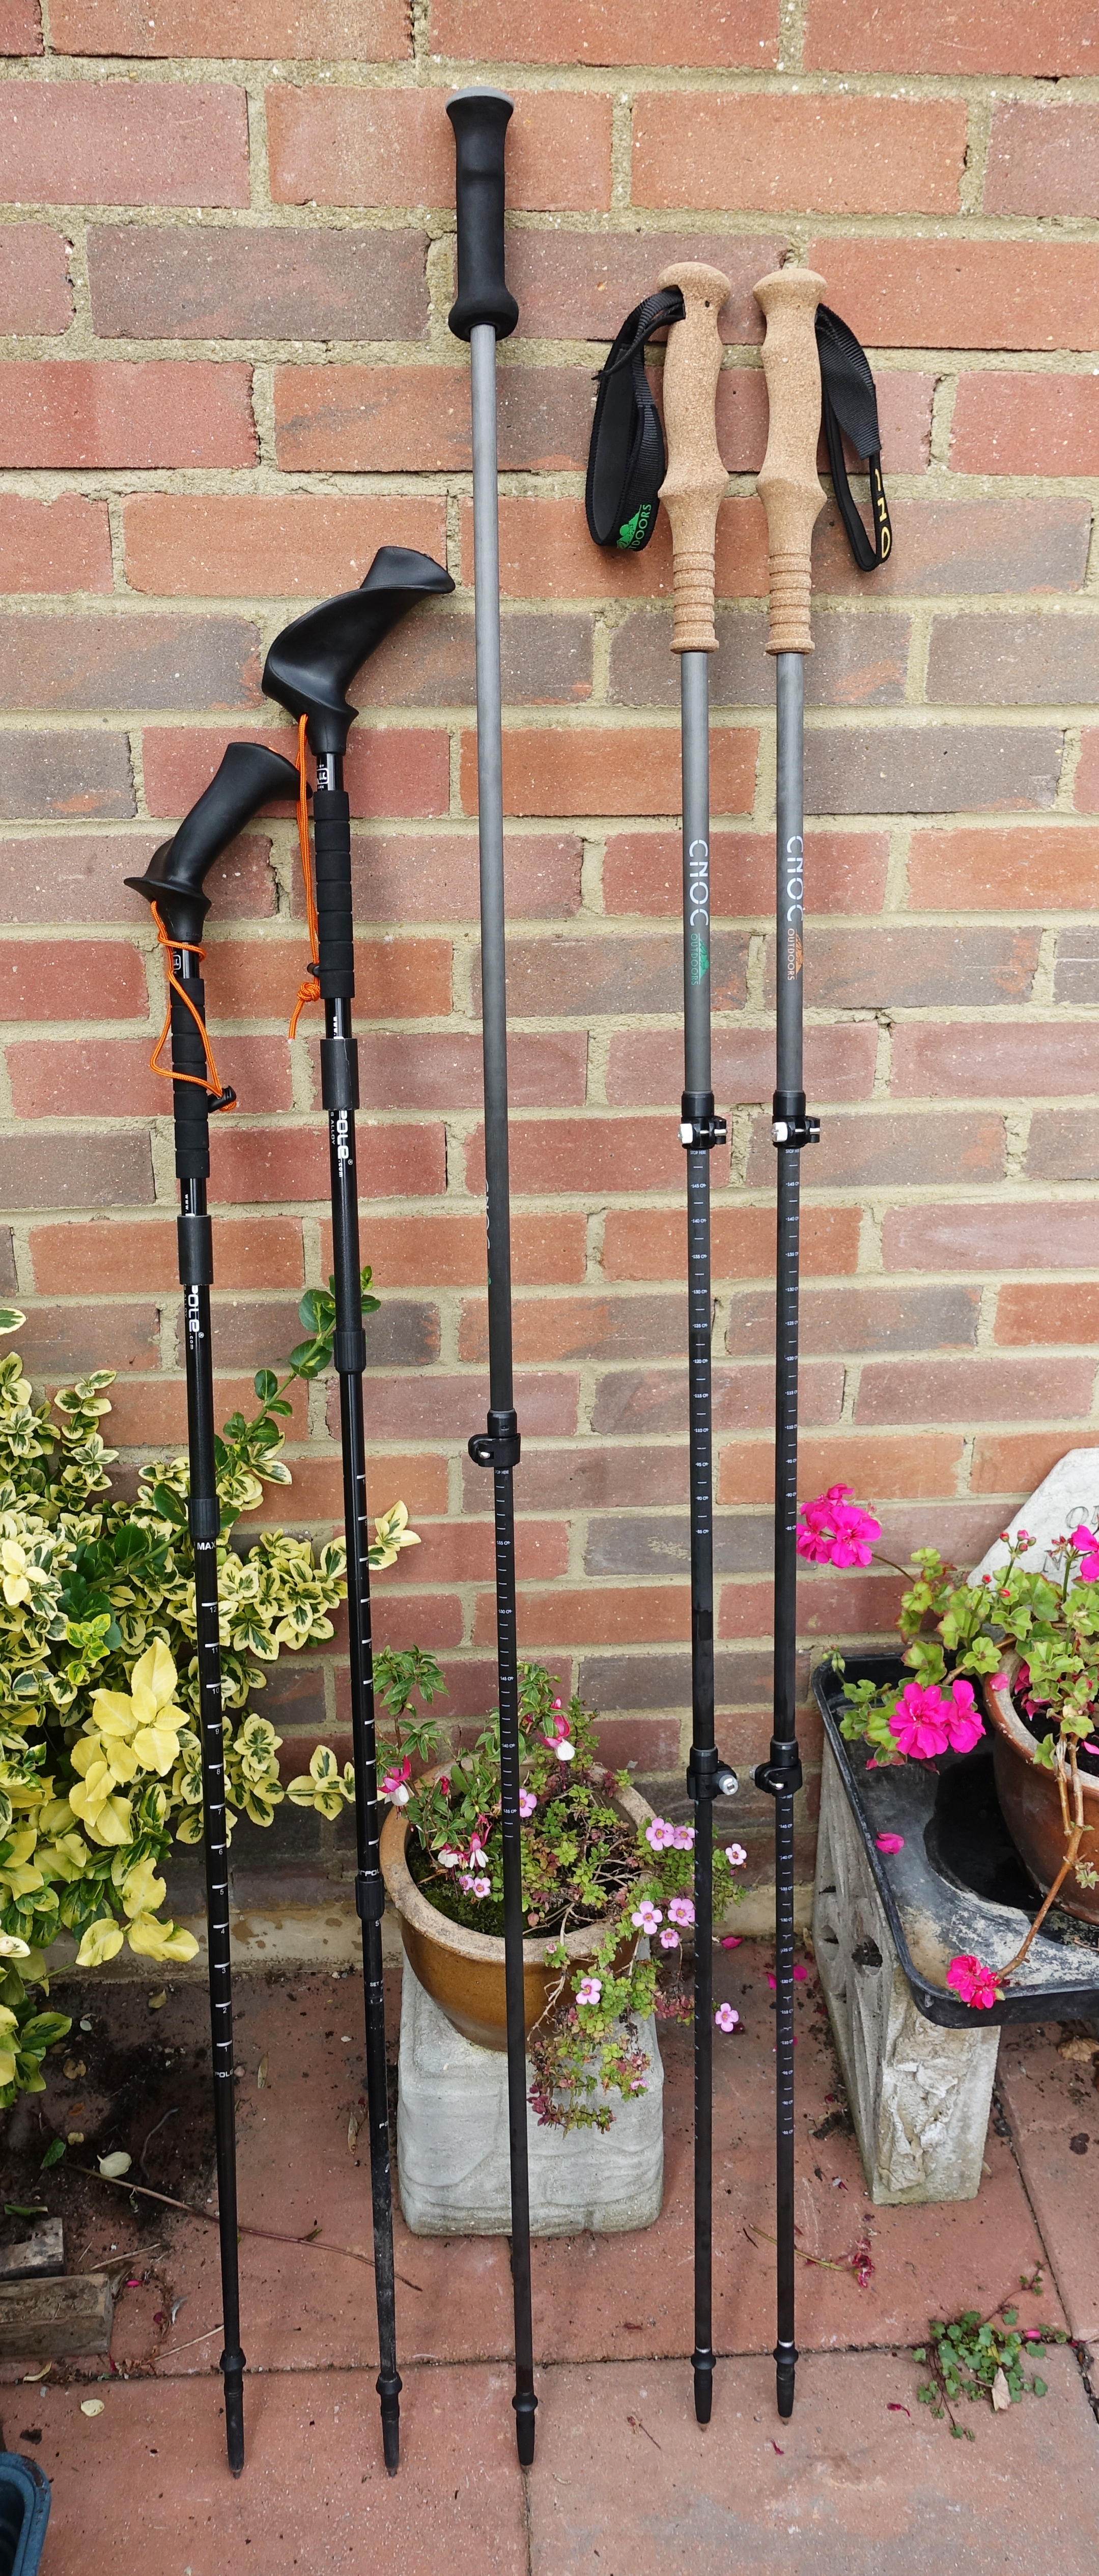 Two brands of pole, all at  maximum safe extension. From left to right: three piece alloy shaft Pacer Pole, two piece Pacer Pole with top alloy shaft and carbon fibre bottom shaft, two-piece Cnoc telescopic carbon fibre staff, three-piece Cnoc carbon fibre trekking poles